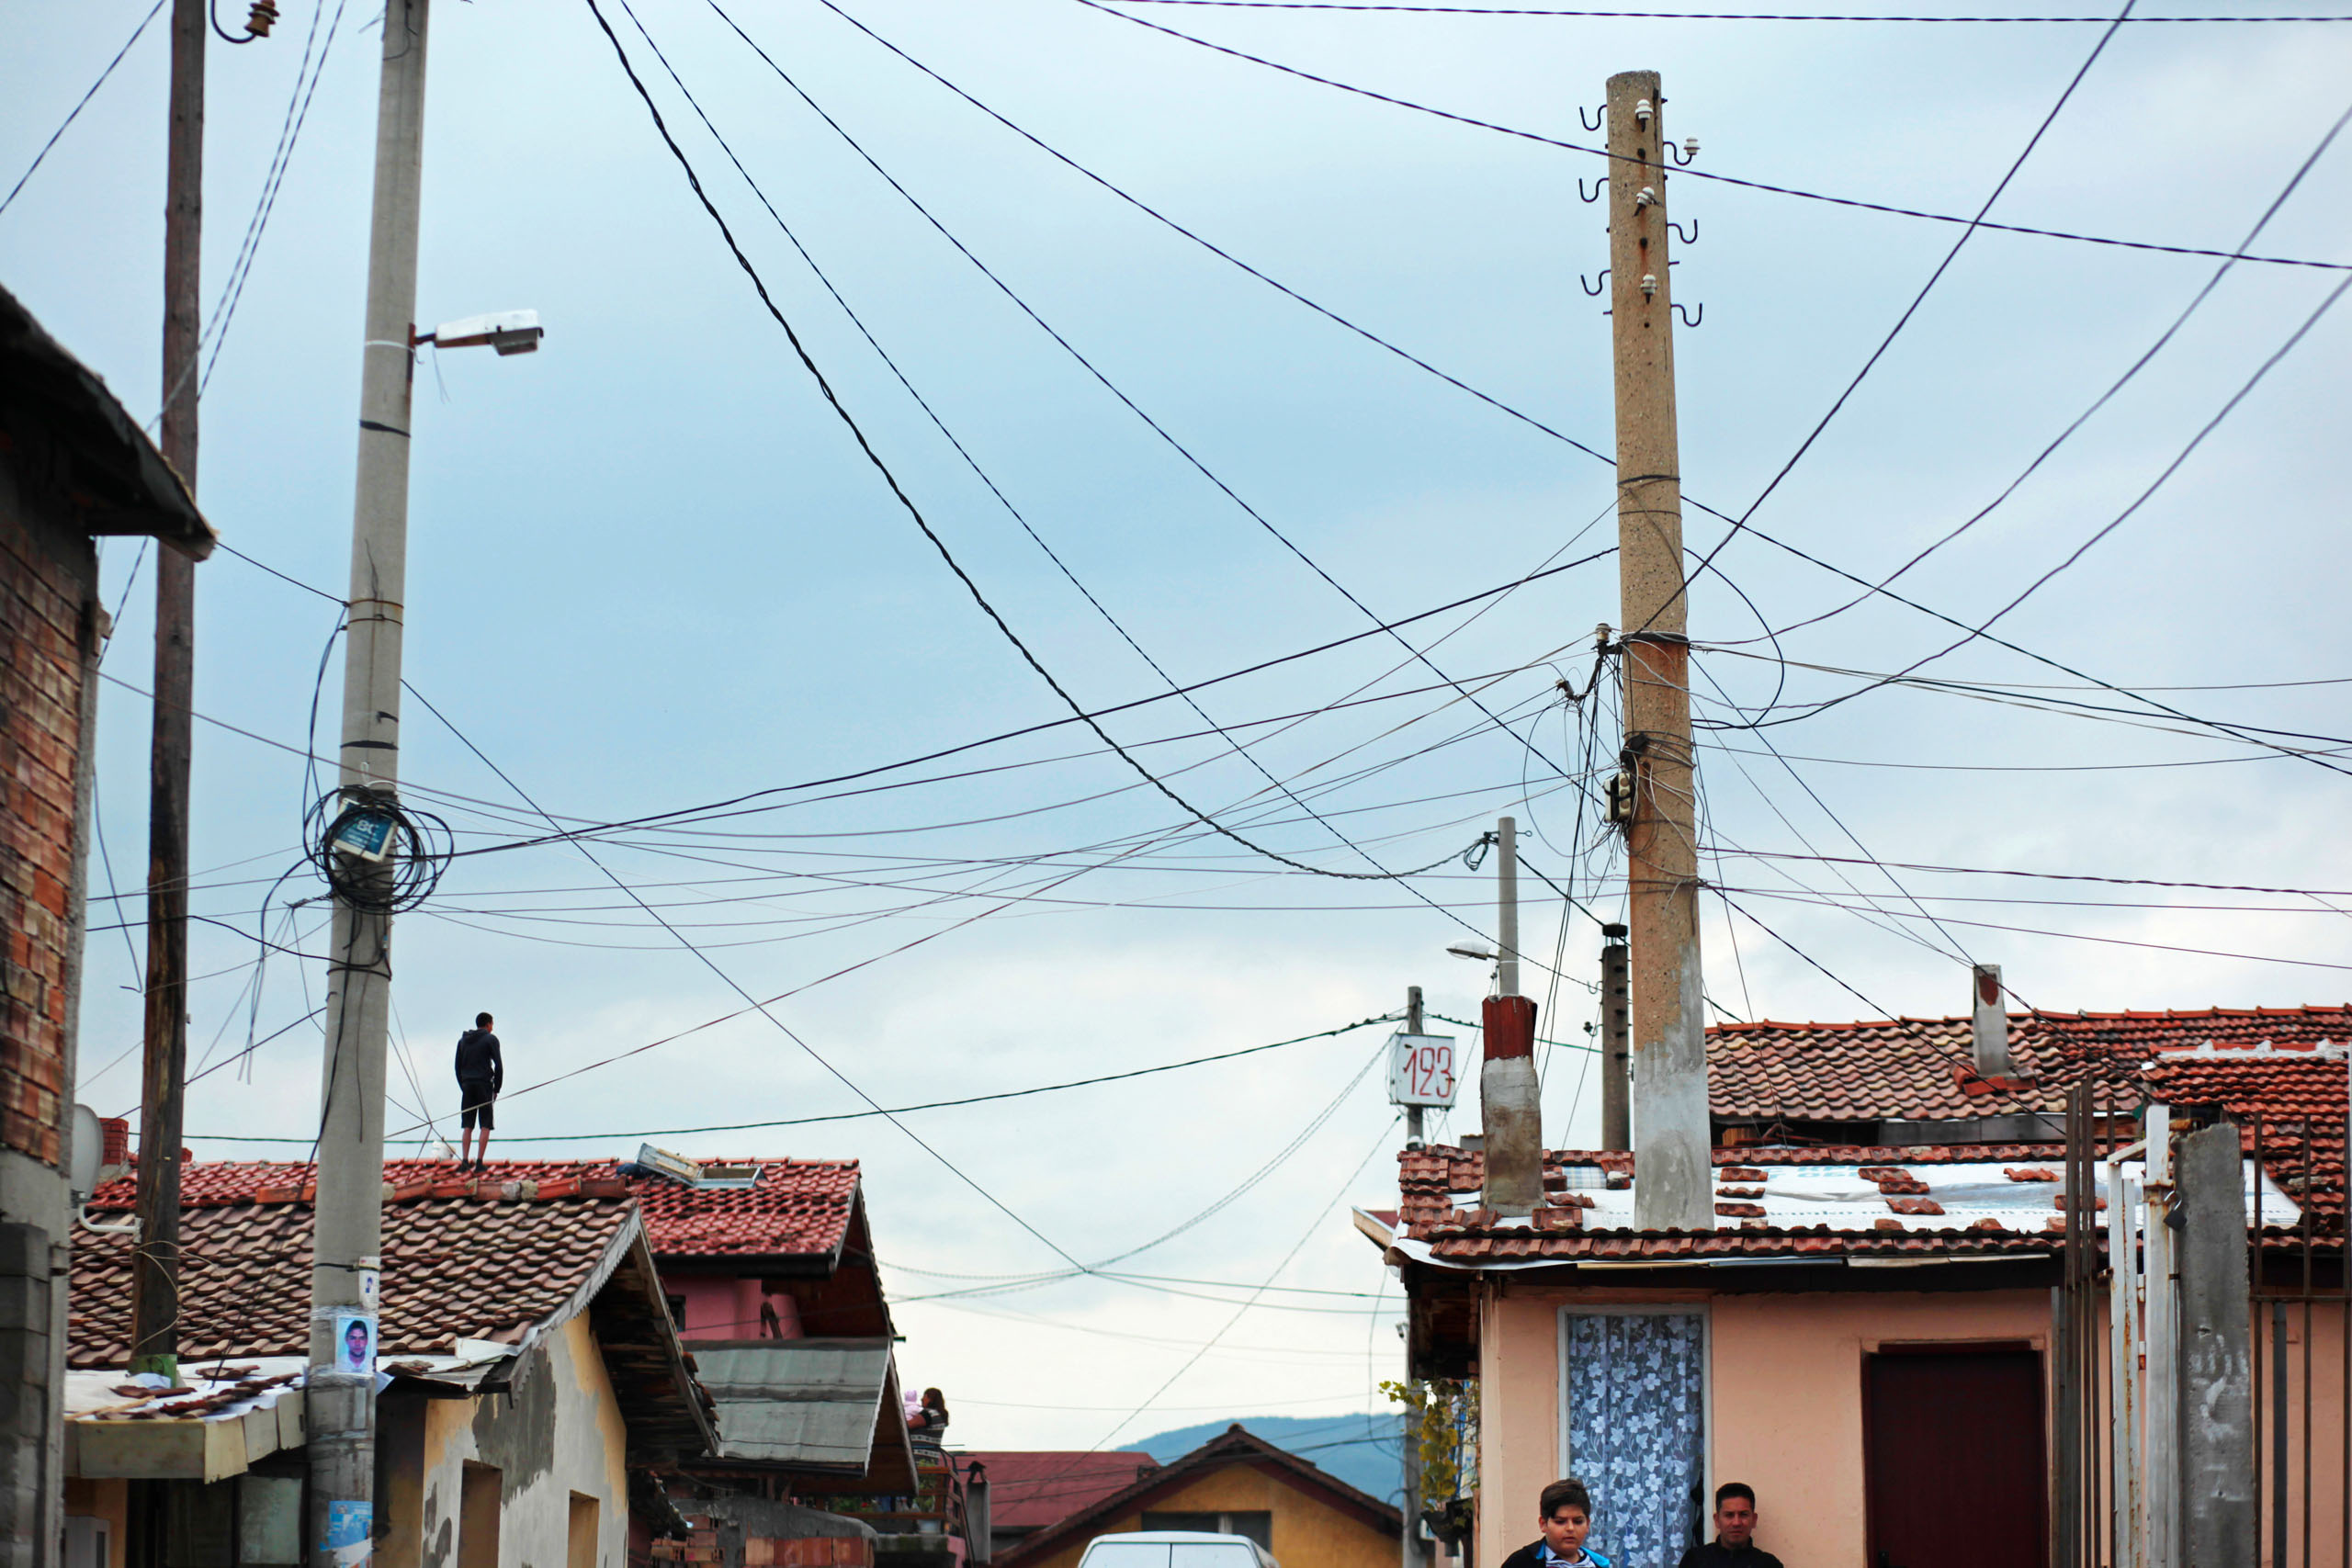 A man stands on a rooftop below a handmade electrical grid hanging over a Roma village, as people turn up to vote in October's Parliamentary elections in Sofia, Bulgaria, Oct. 5, 2014.